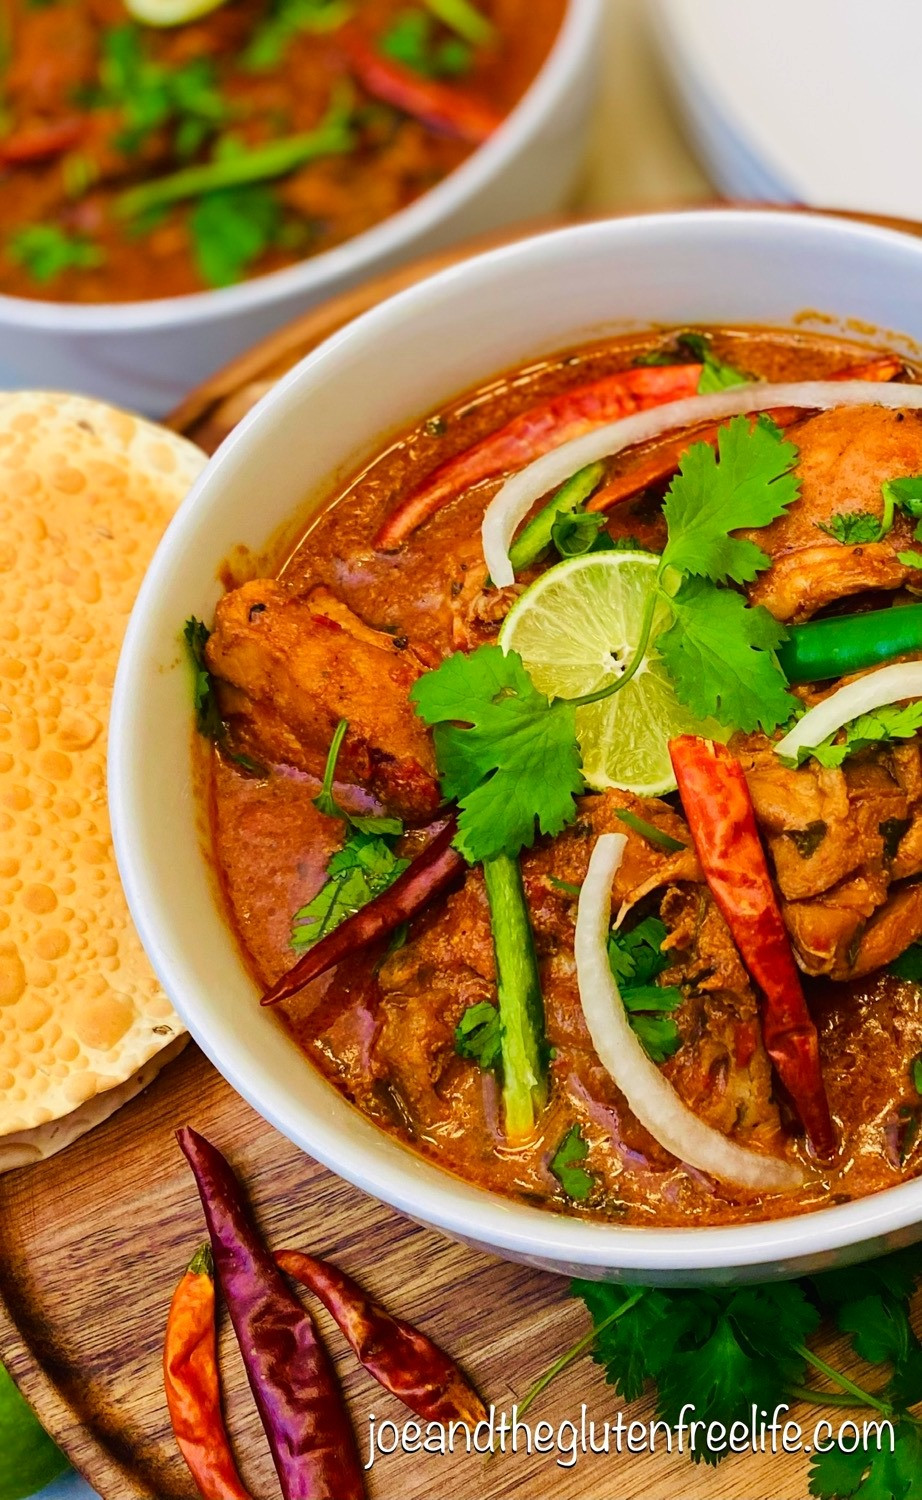 Learn how to make this delicious chicken curry from Northern India and Pakistan!